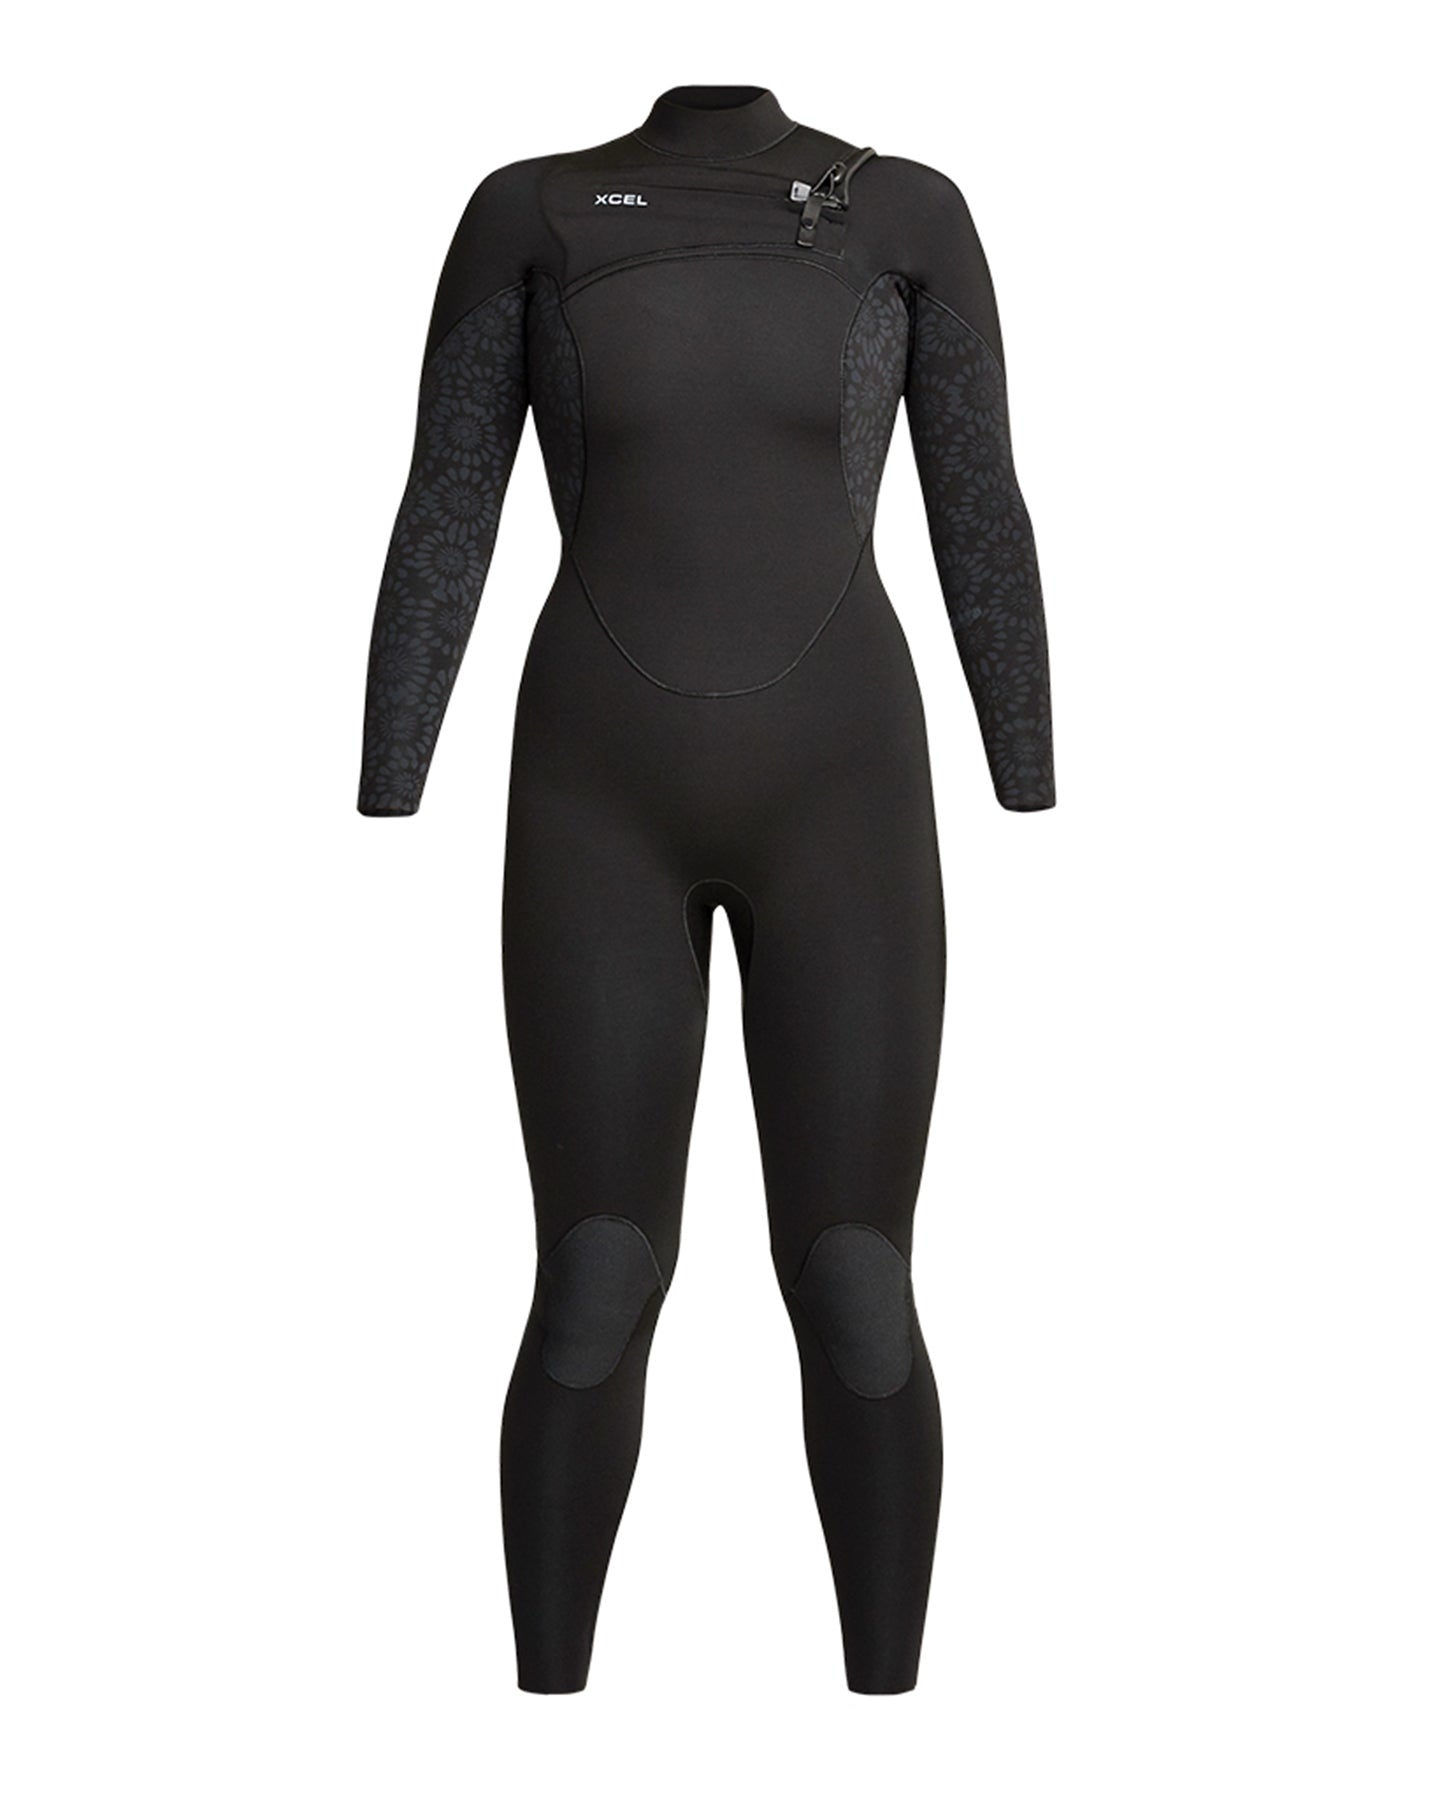 XCEL WOMENS COMP 3/2MM WETSUIT BLACK/FLOWER  - CHEST ZIP 2021 - Board Store XcelWetsuits